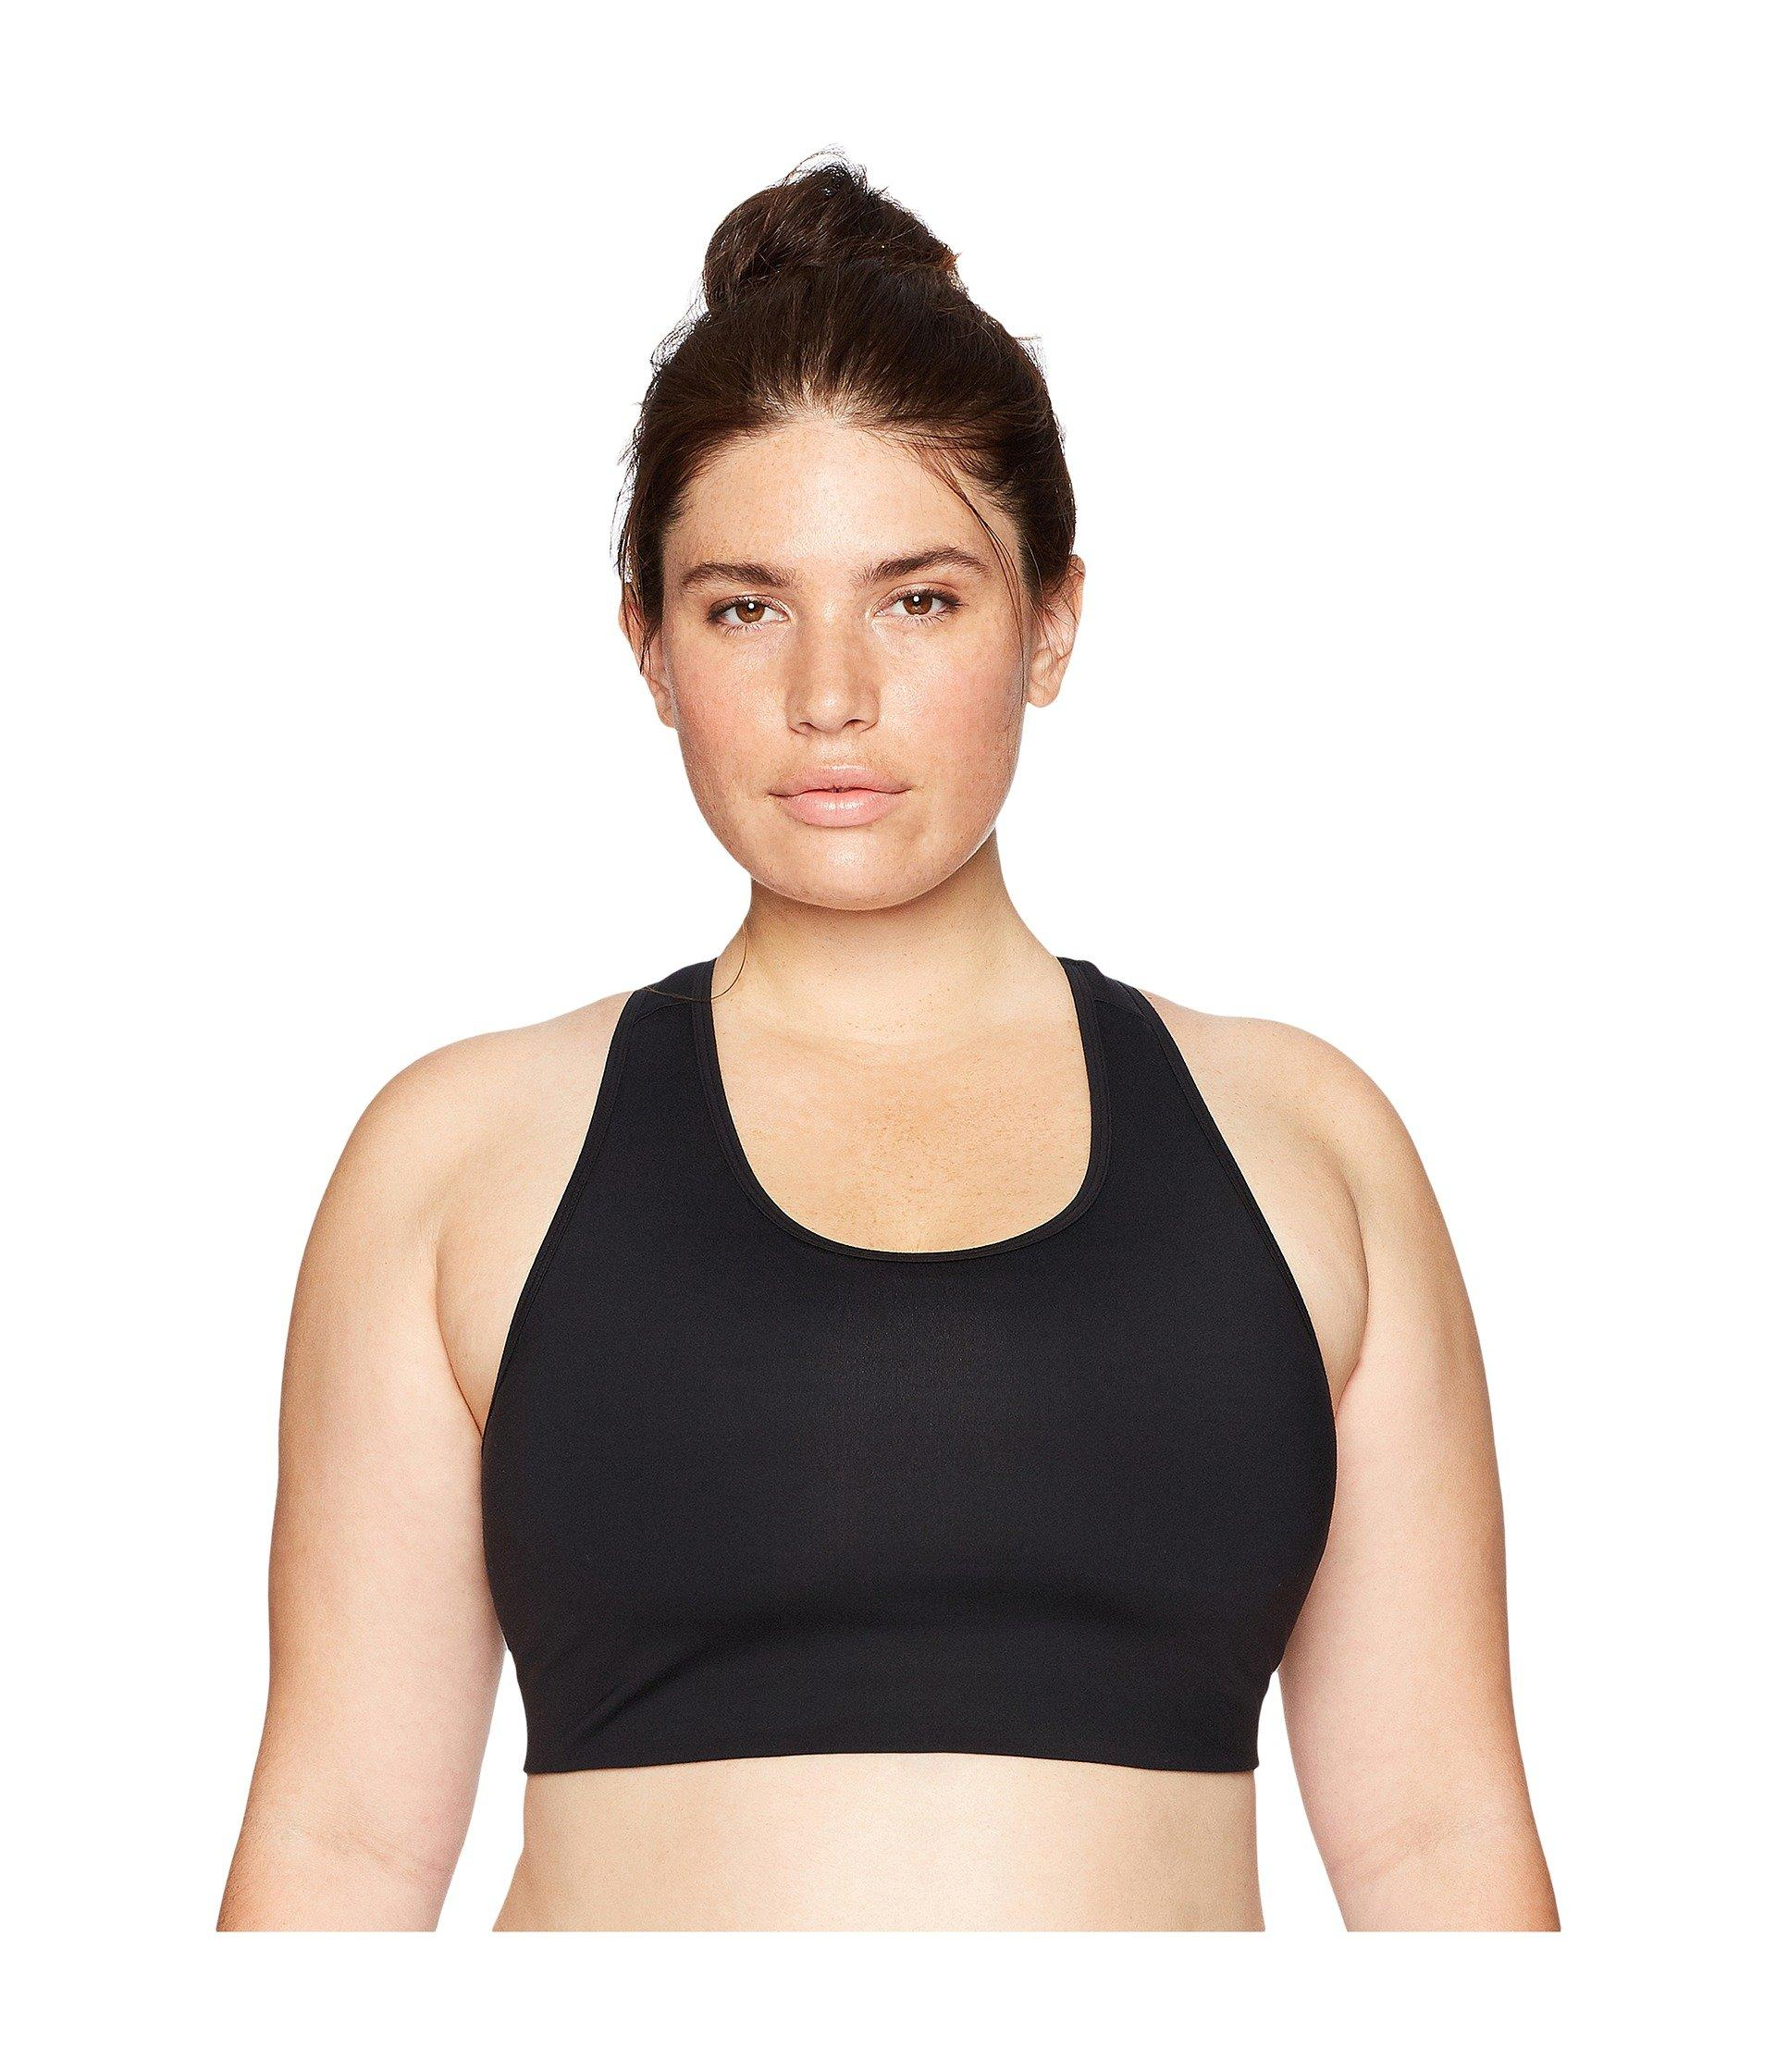 07f59cb9517d6 Core 10 Icon Series - The Track Star Plus Size Sports Bra (black ...